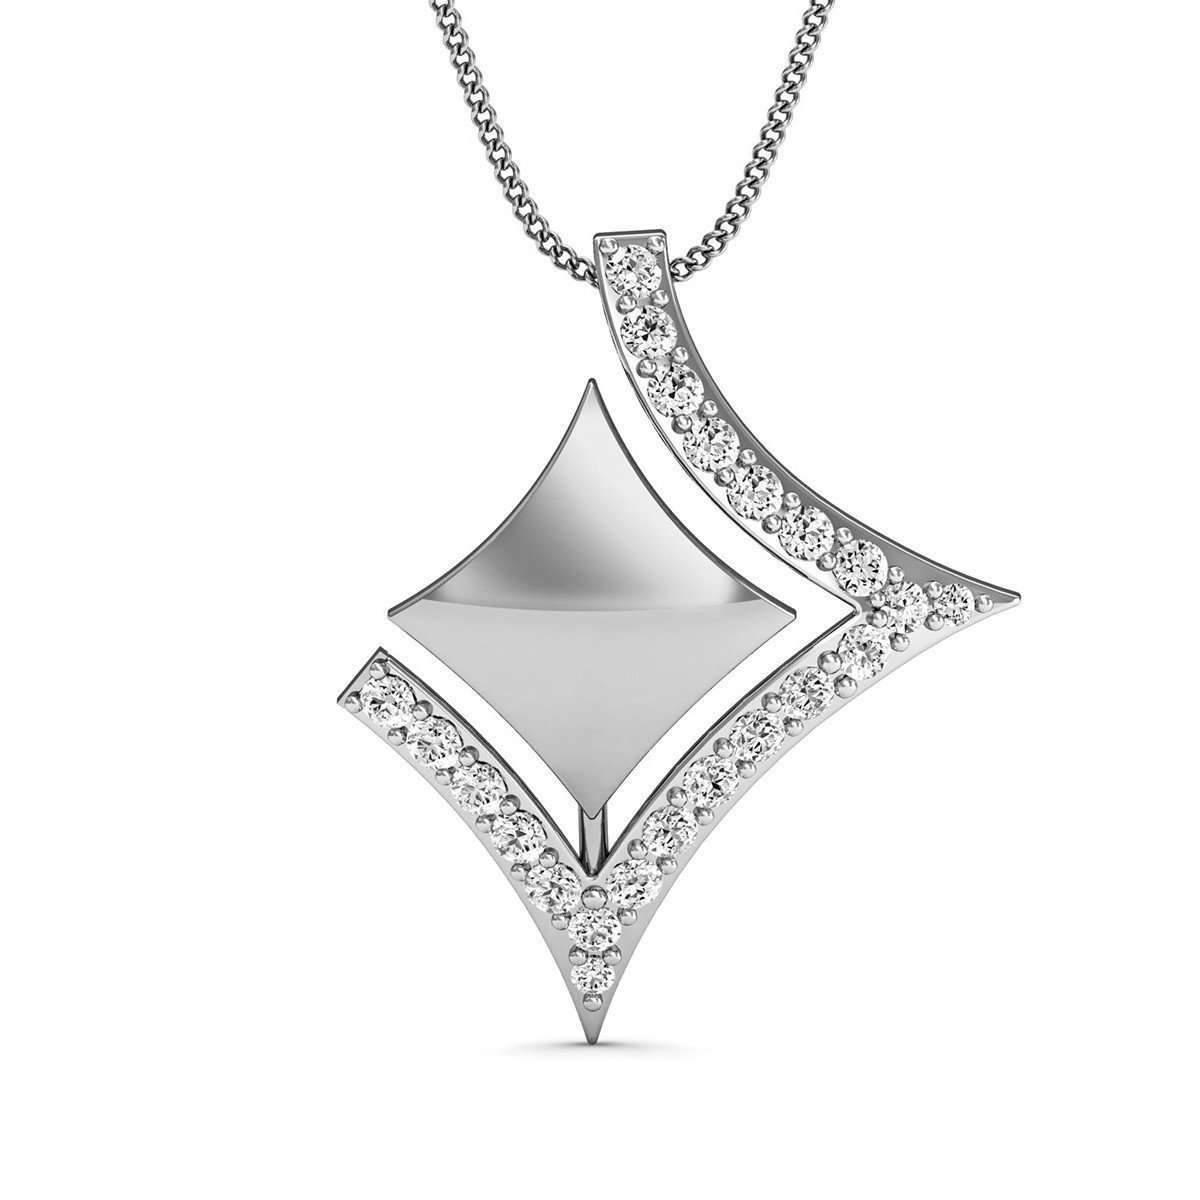 Diamoire Jewels Pave Diamond Pendant handcarved in 18kt White Gold qgUumU4Oko